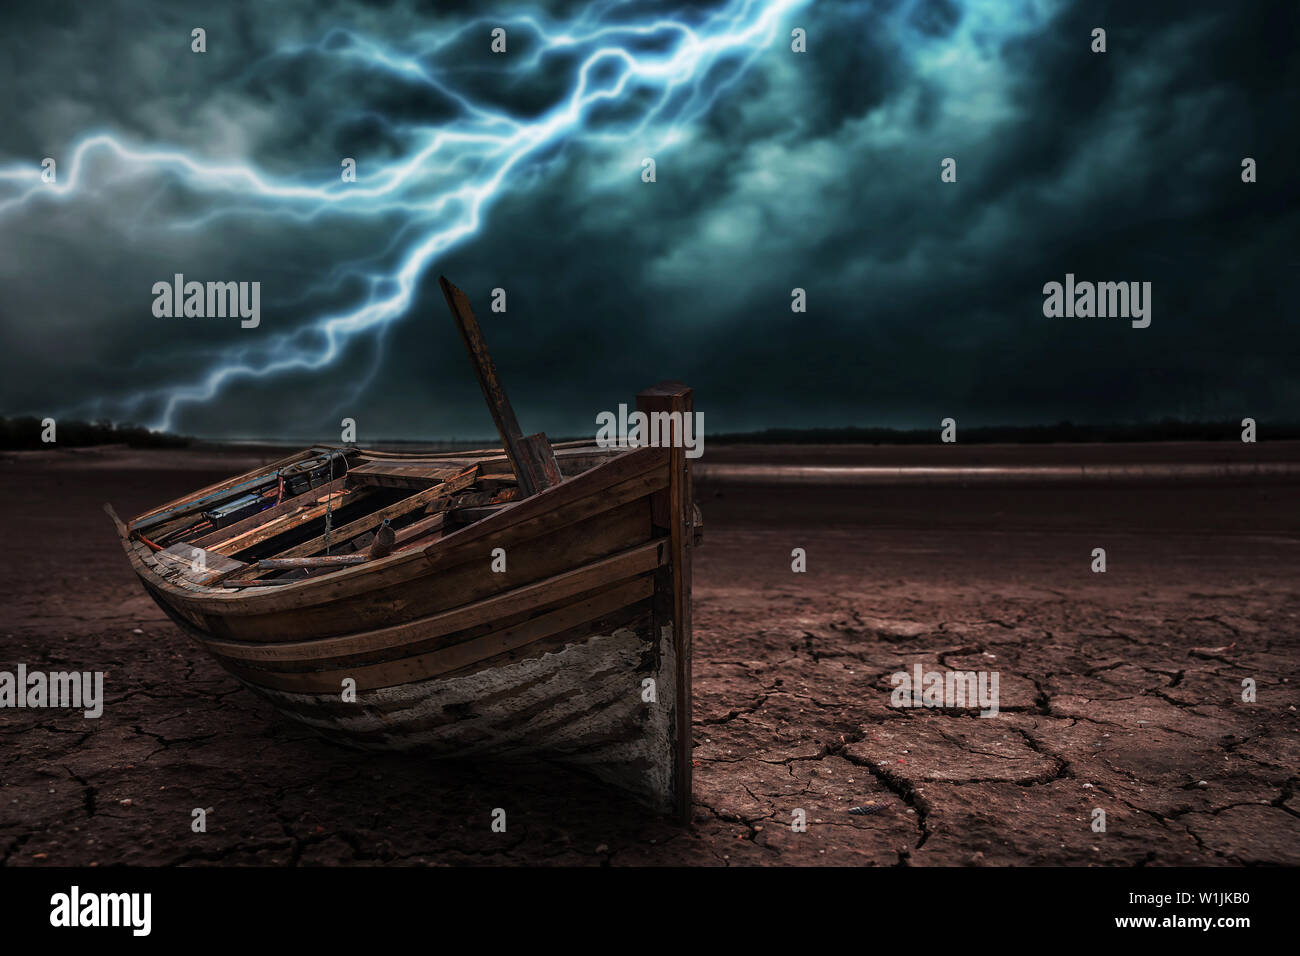 Boat crash land to the ground dry and cracked. With lightning storm - Stock Image